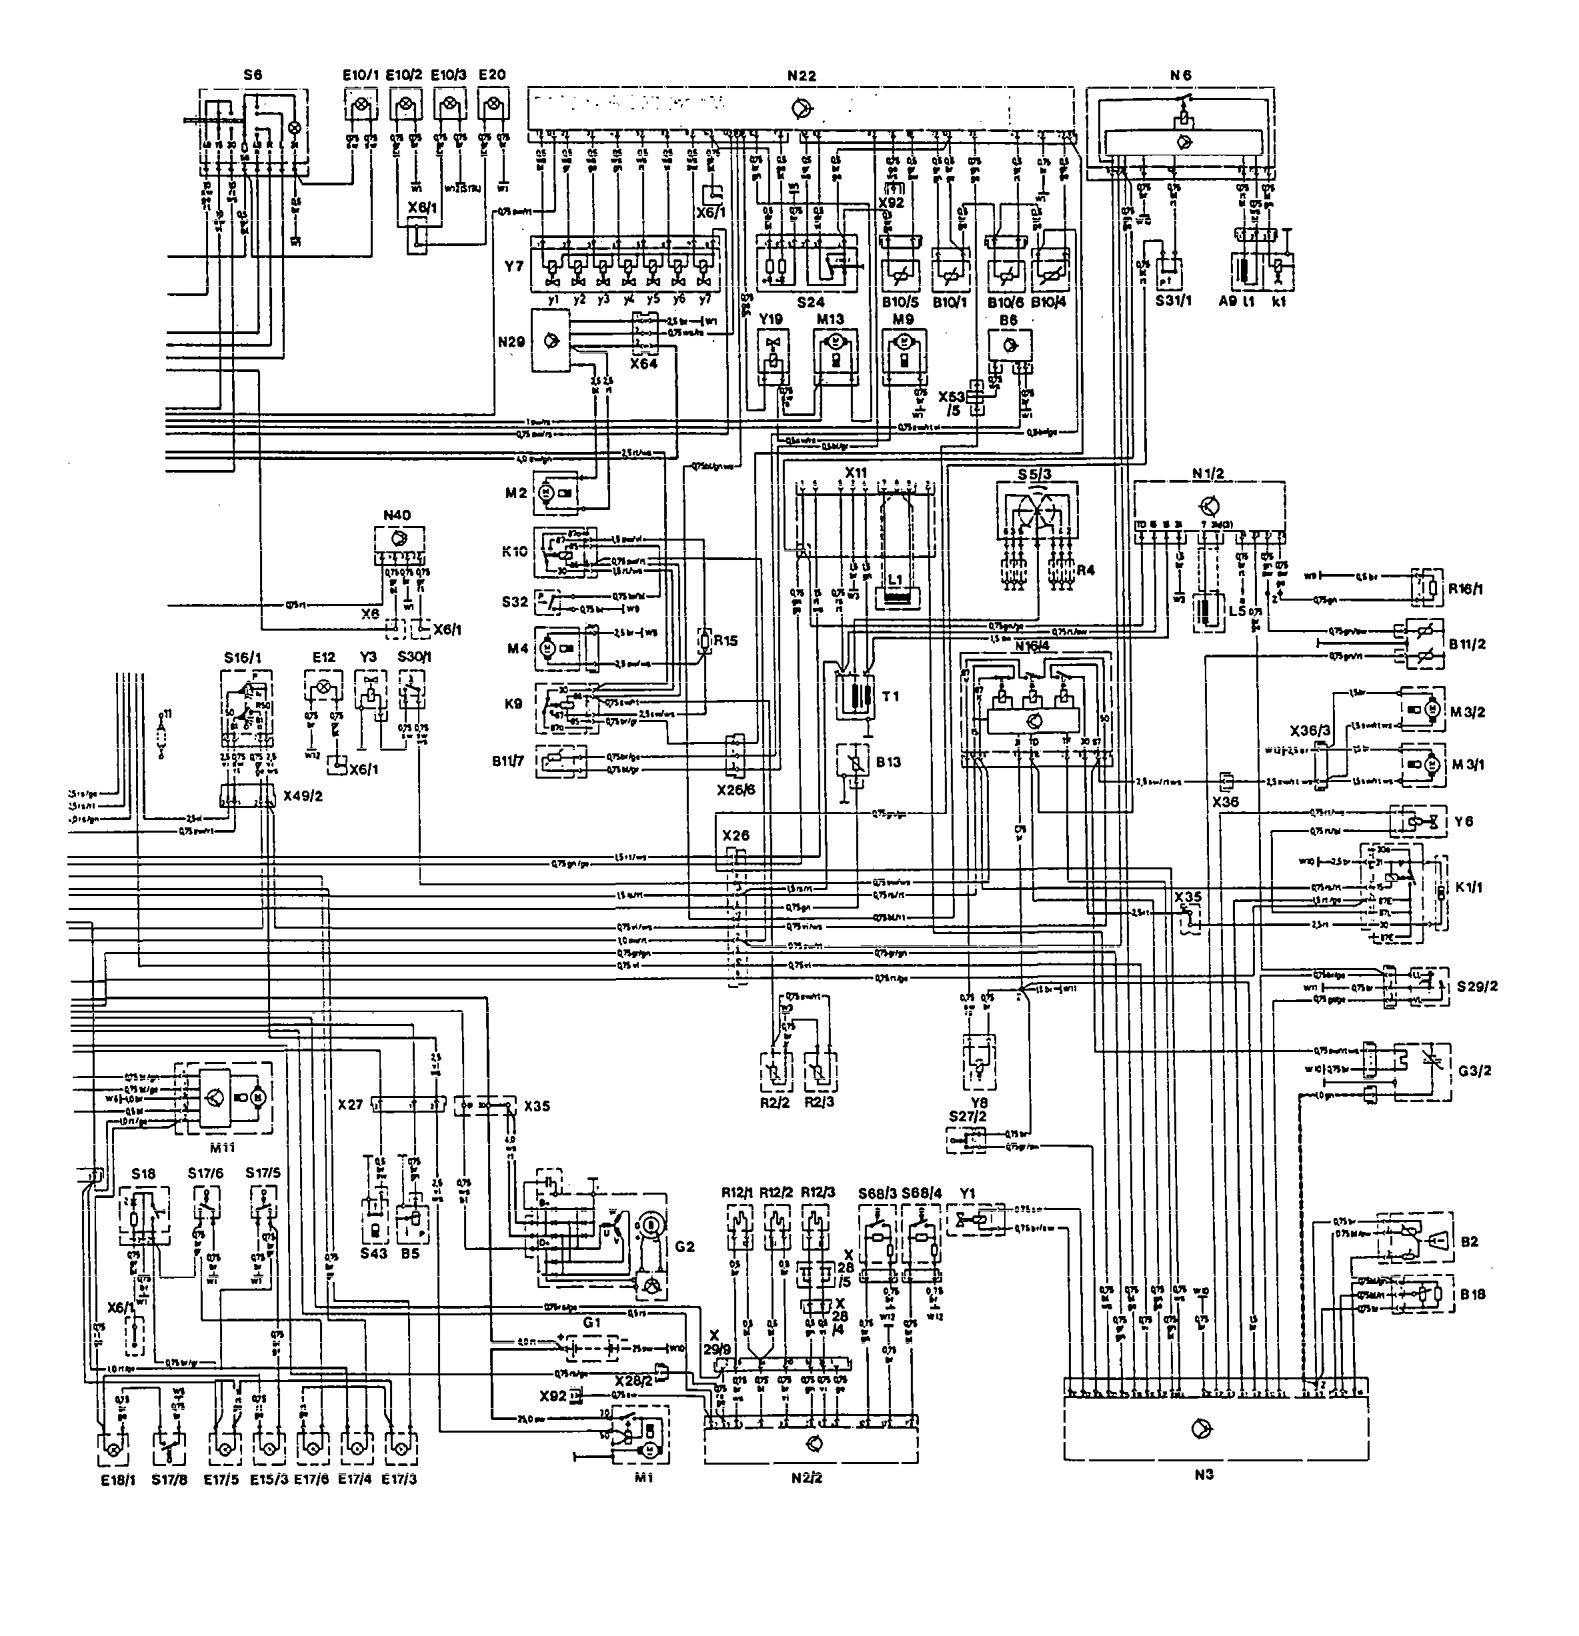 hight resolution of mercedes benz 300e 1992 1993 wiring diagrams hvac typical furnace wiring diagram thermostat wiring diagram